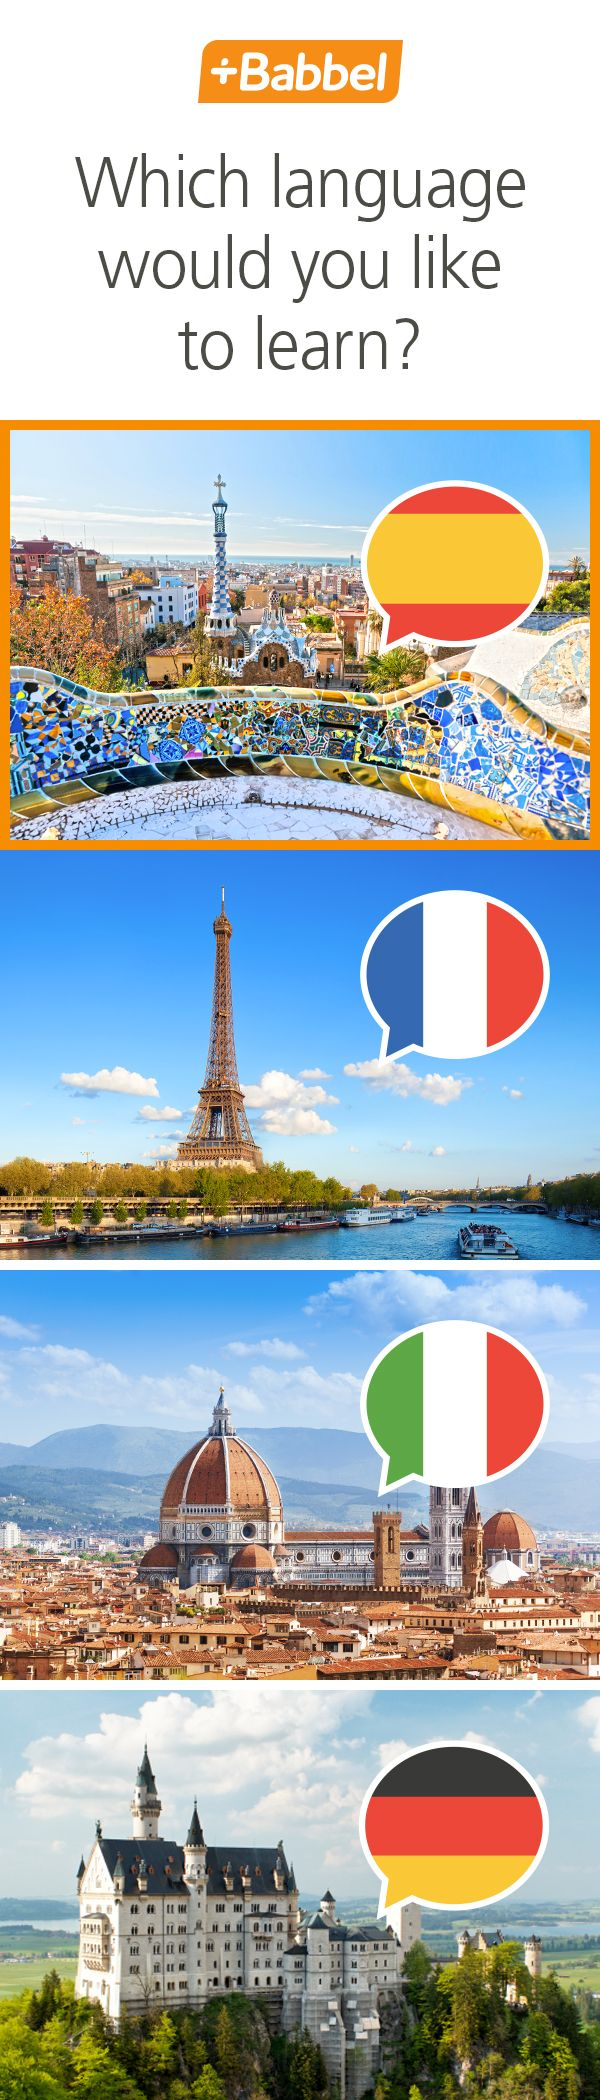 Learn Spanish, French, Italian, German and many more with Babbel. Expand your worldview!